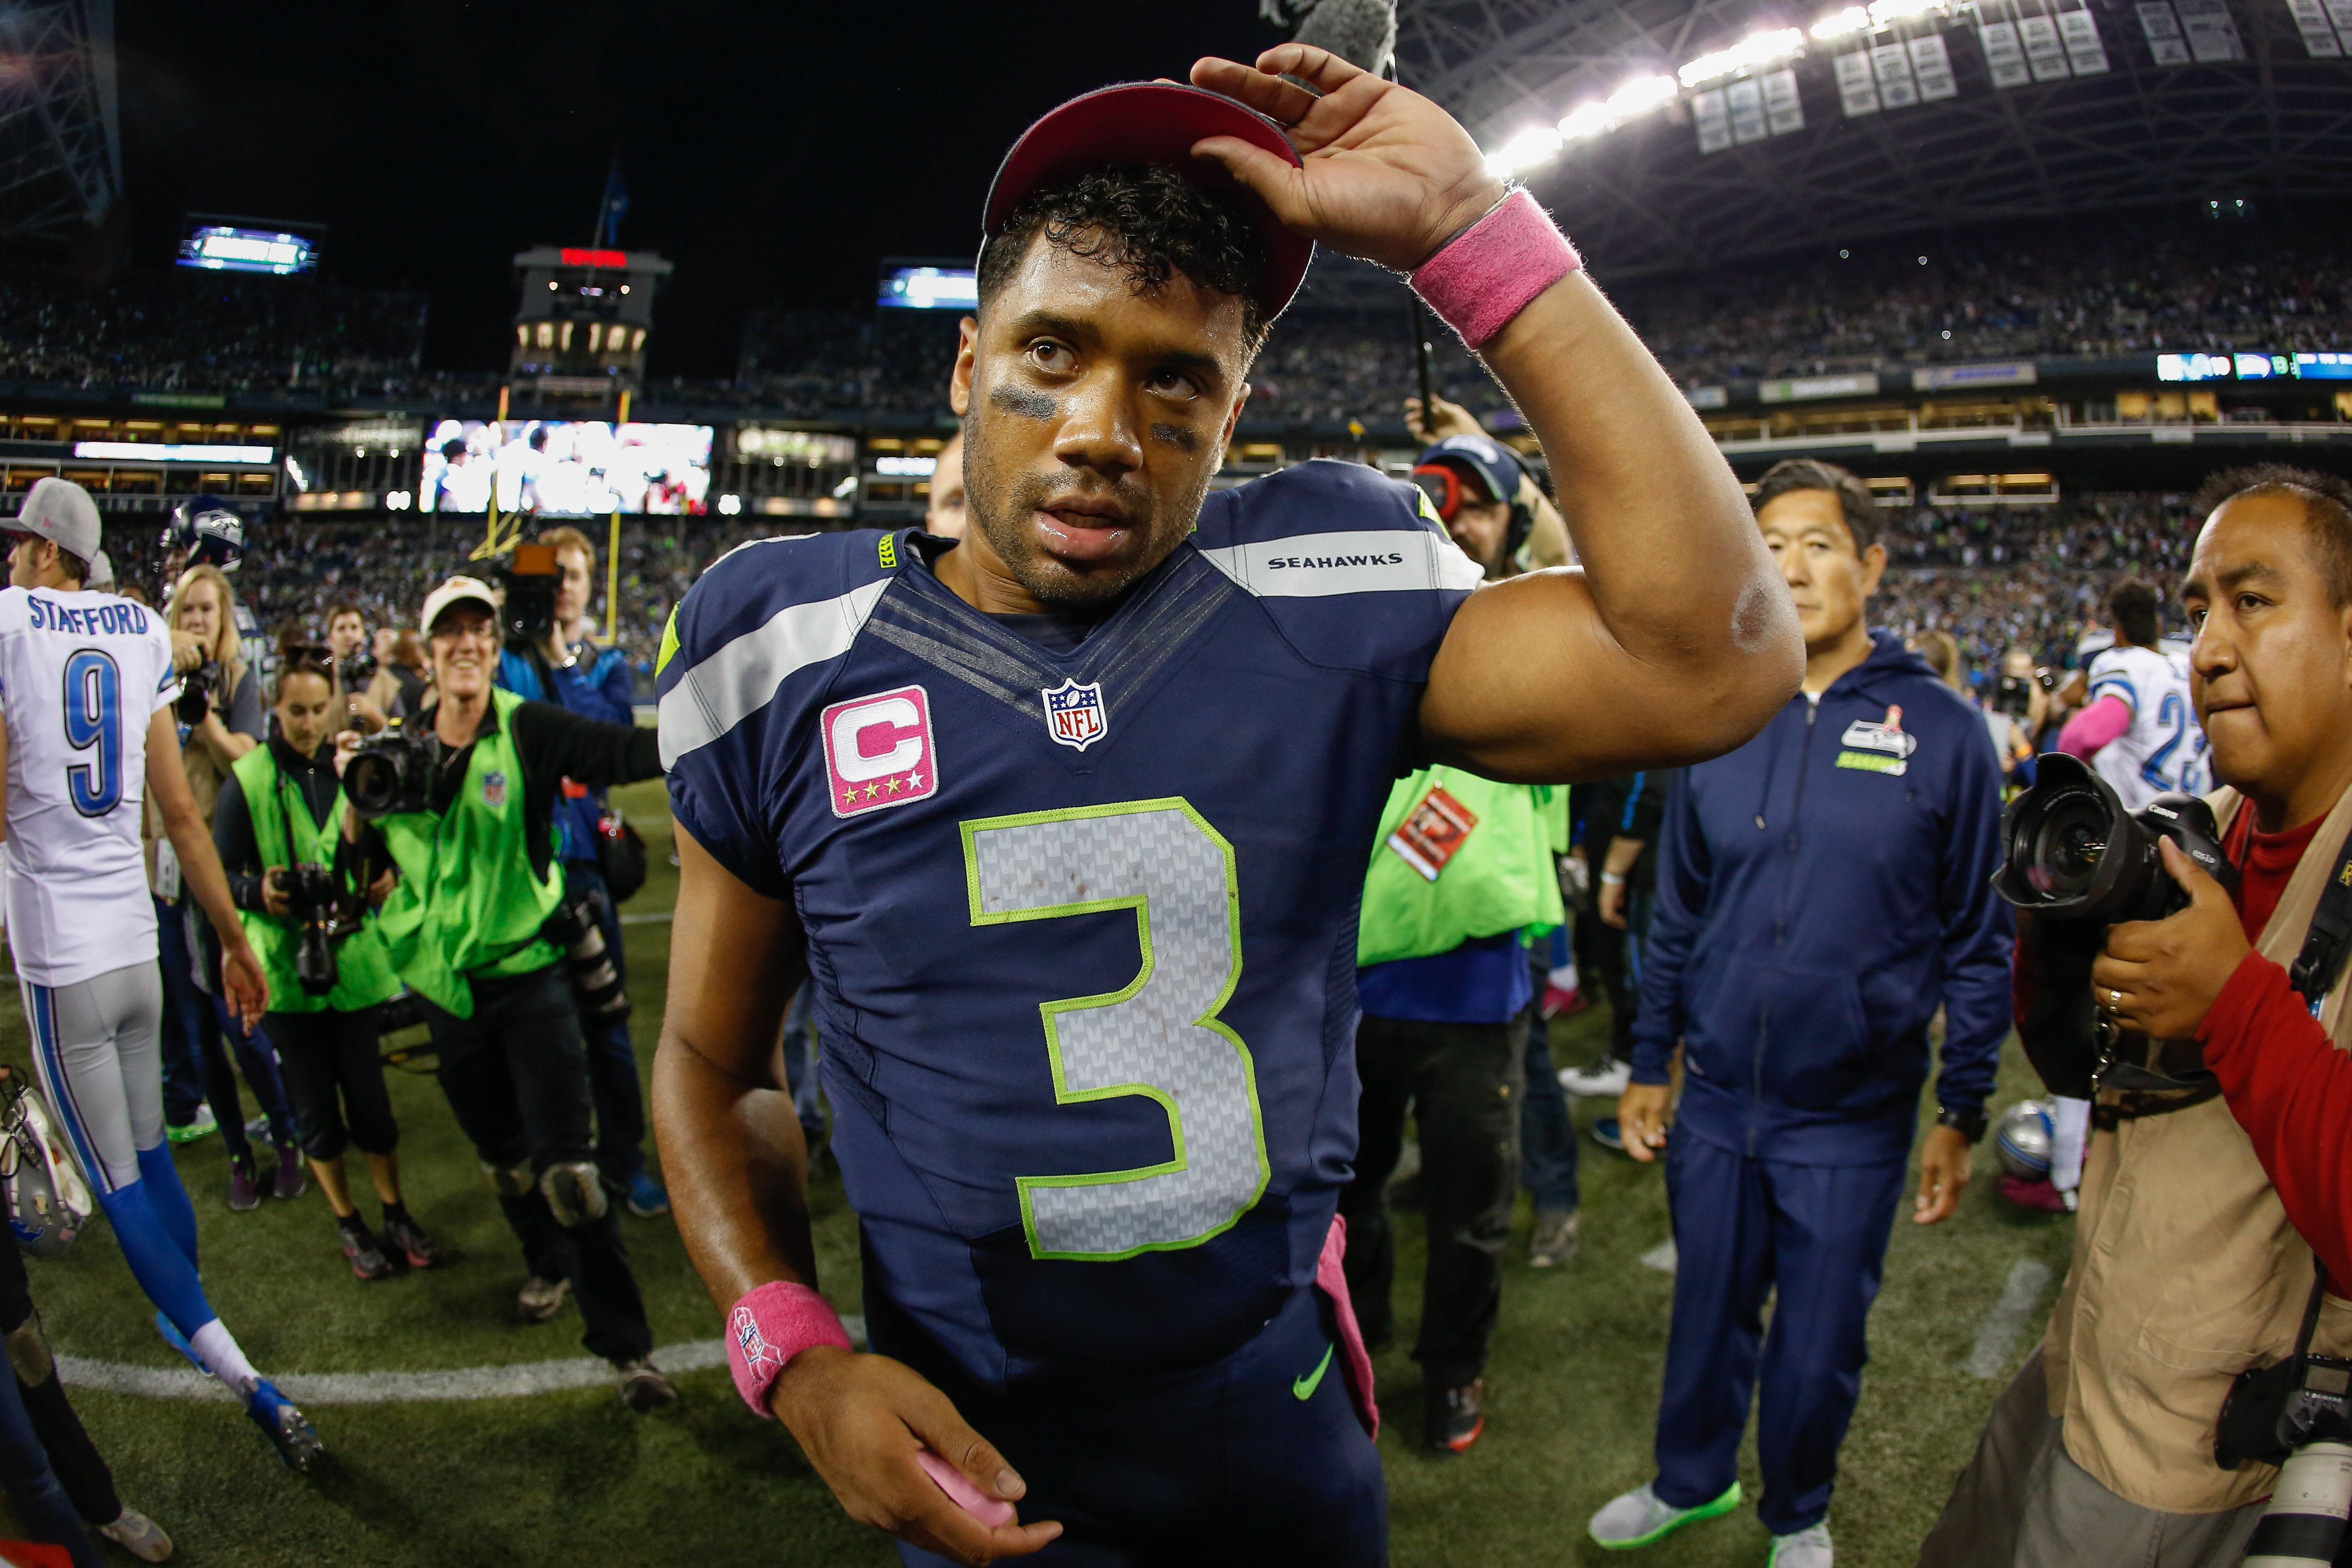 SEATTLE, WA - OCTOBER 05:  Quarterback Russell Wilson #3 of the Seattle Seahawks heads off the field after the game against the Detroit Lions at CenturyLink Field on October 5, 2015 in Seattle, Washington. The Seahawks defeated the Lions 13-10.  (Photo by Otto Greule Jr/Getty Images)